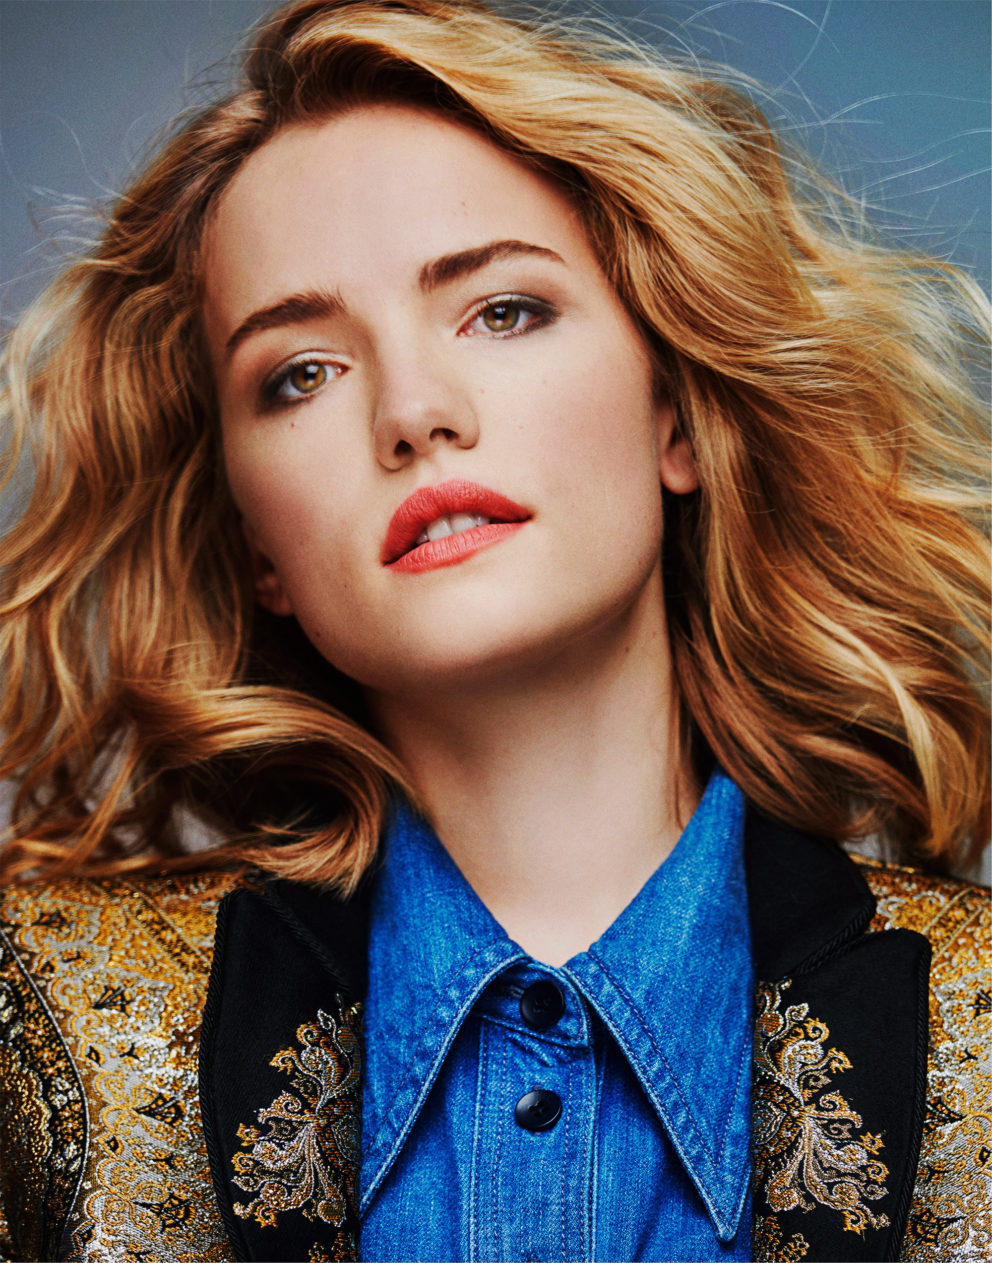 190925 0060 Sbjct Willa Fitzgerald 157 By Christian Hogstedt